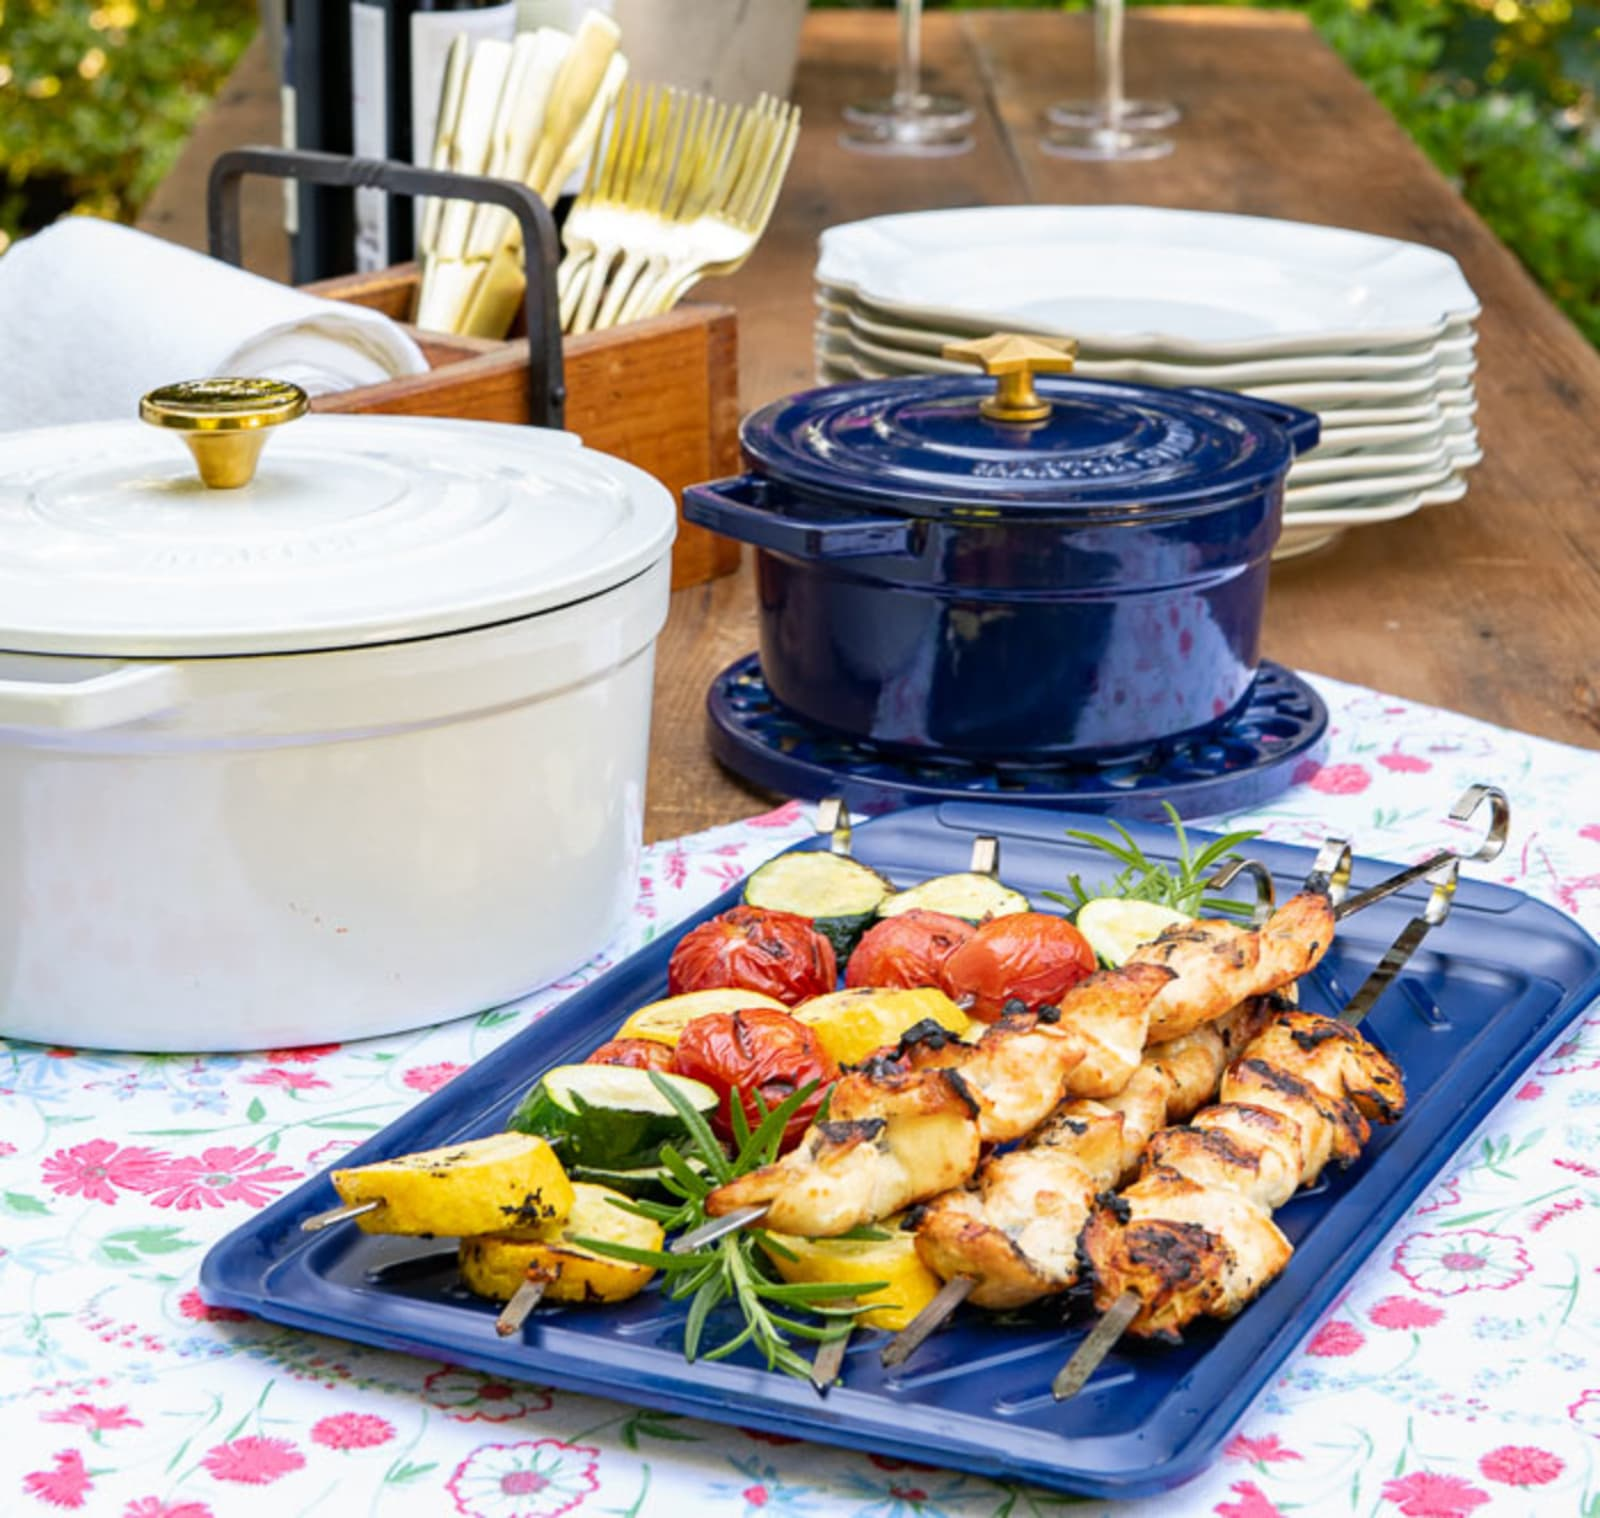 Outdoor table with chicken and vegetable skewers, wine, dinnerware, and flowers